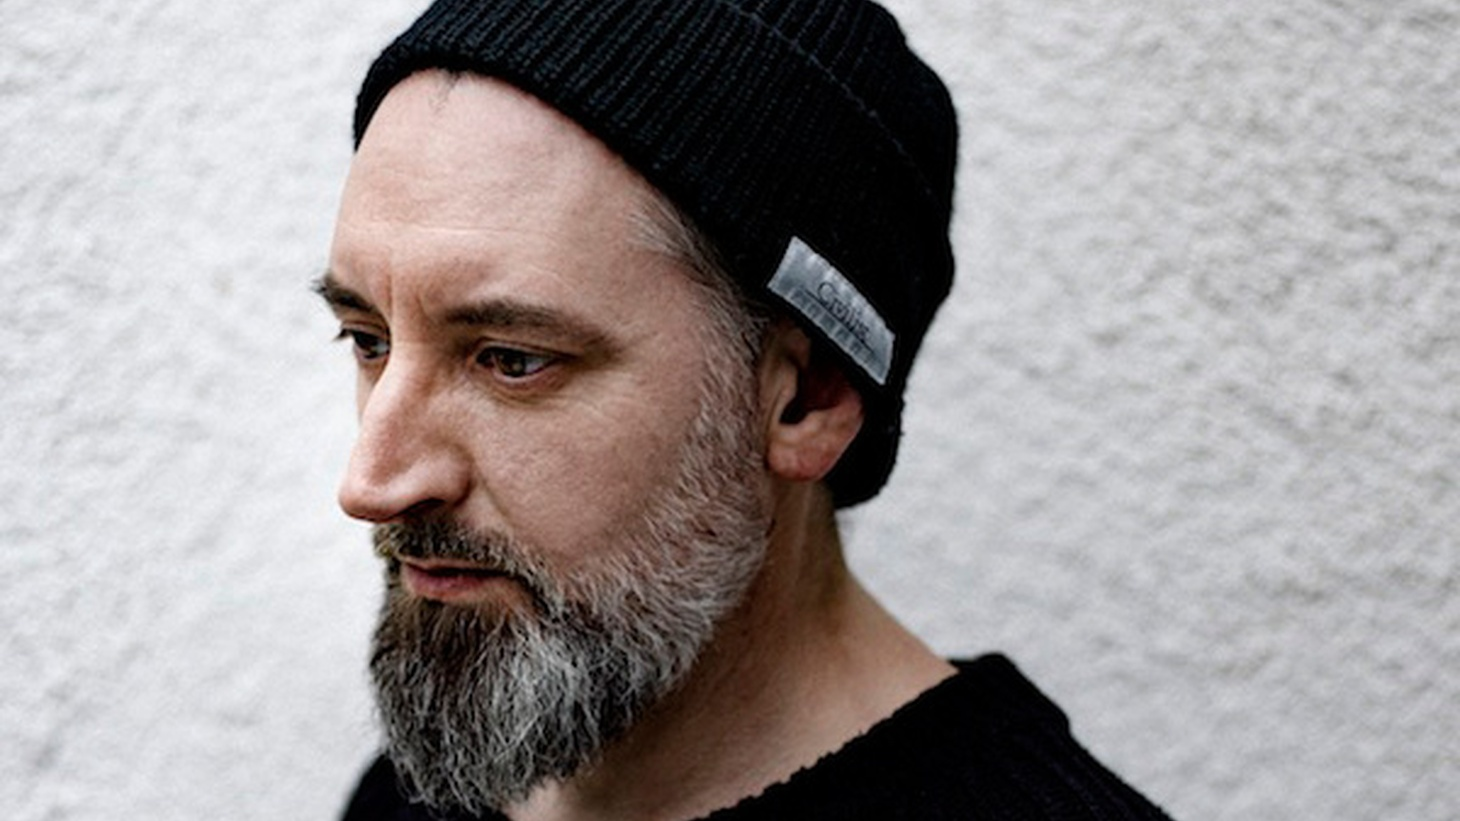 Fink's knack for storytelling lead him to collaborations with Amy Winehouse and John Legend.